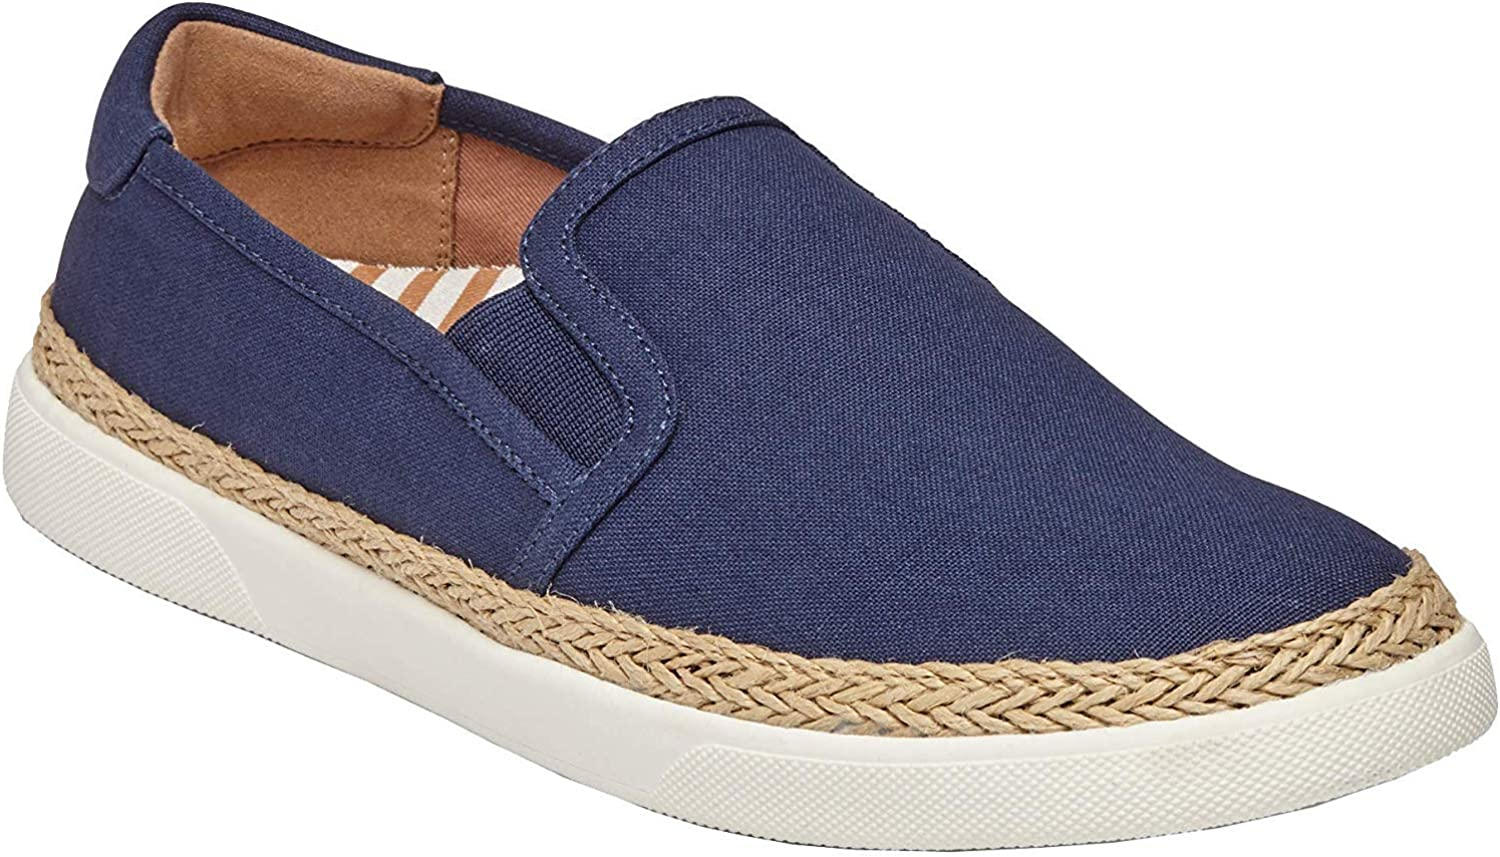 Vionic damen& 39;s Sunny Rae Slip-on Turnschuhe - Ladies Turnschuhe Concealed Orthotic Arch Support